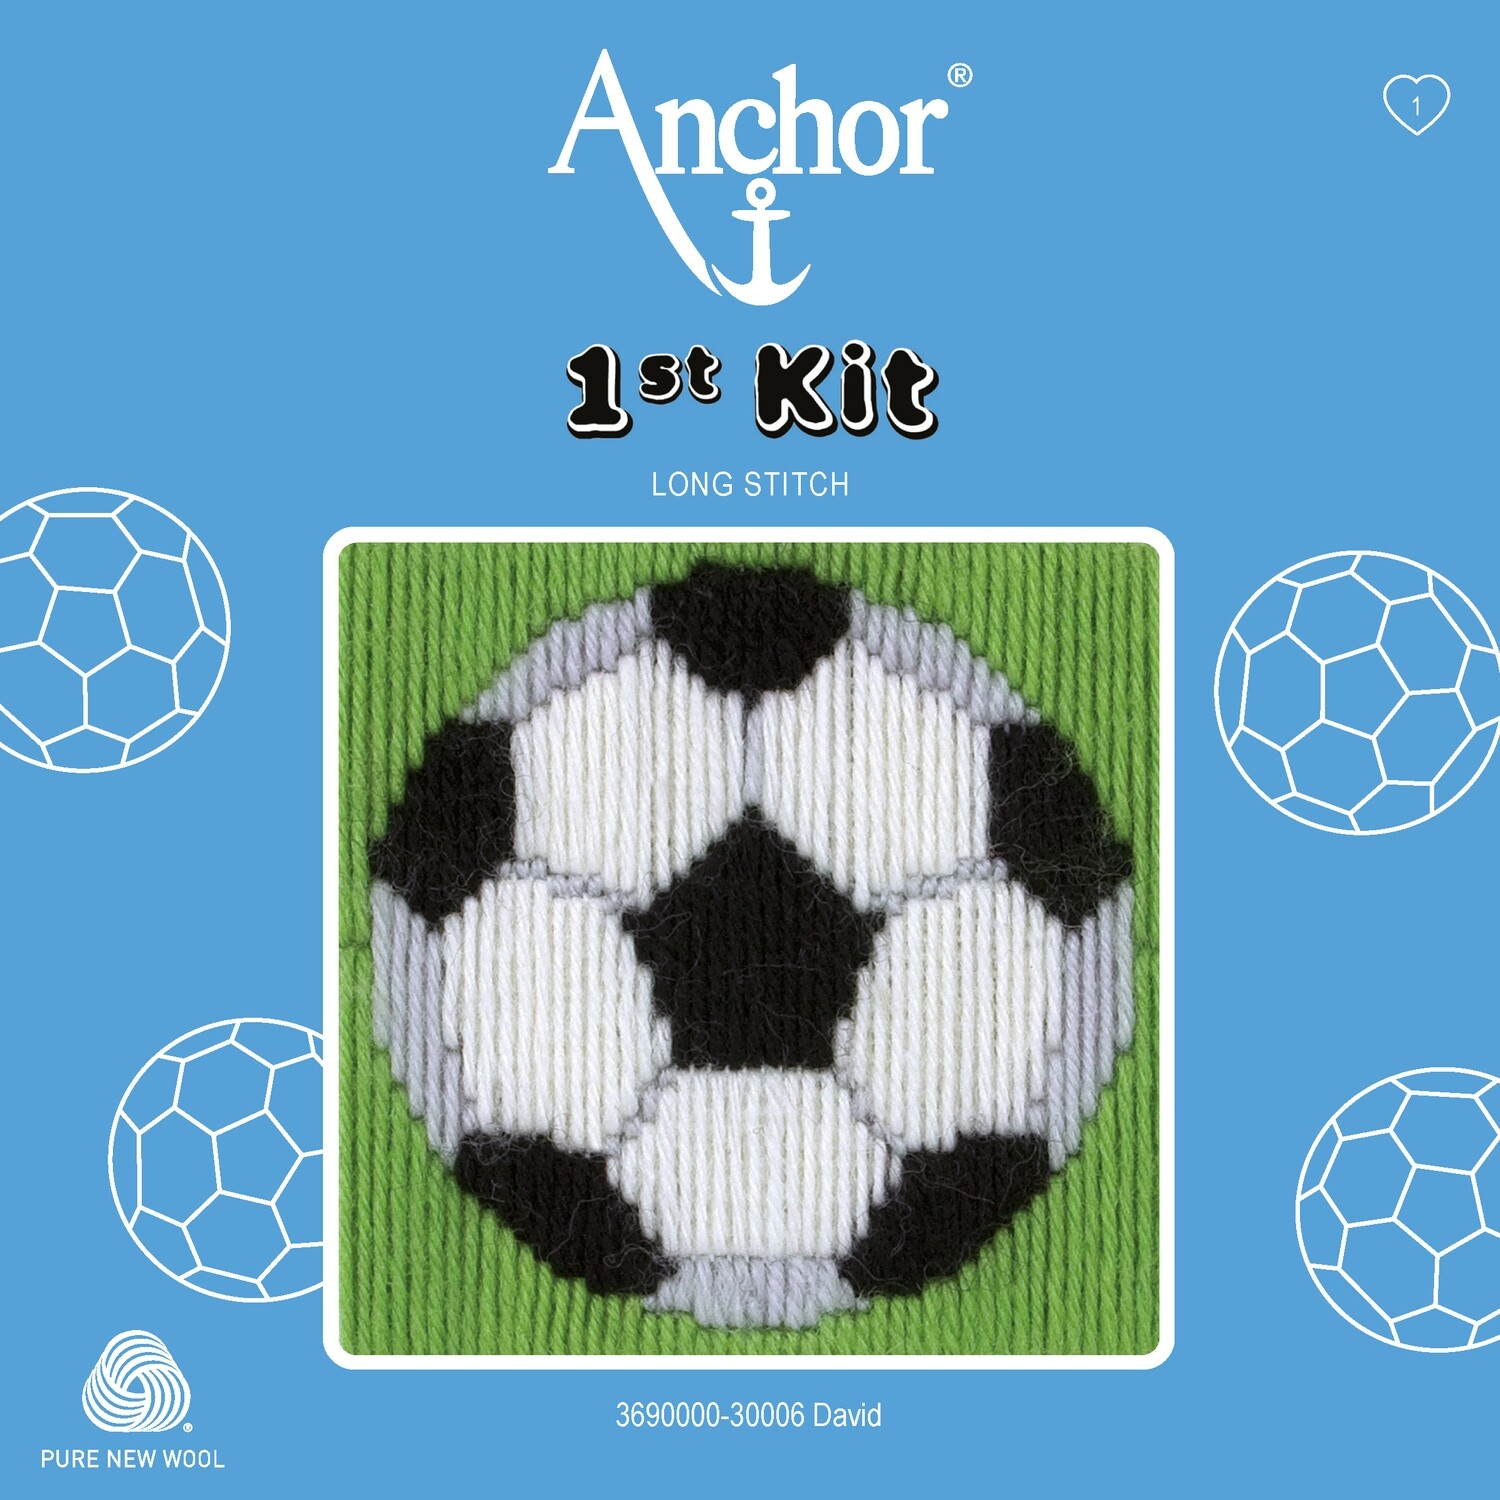 Anchor 1st Kit - David